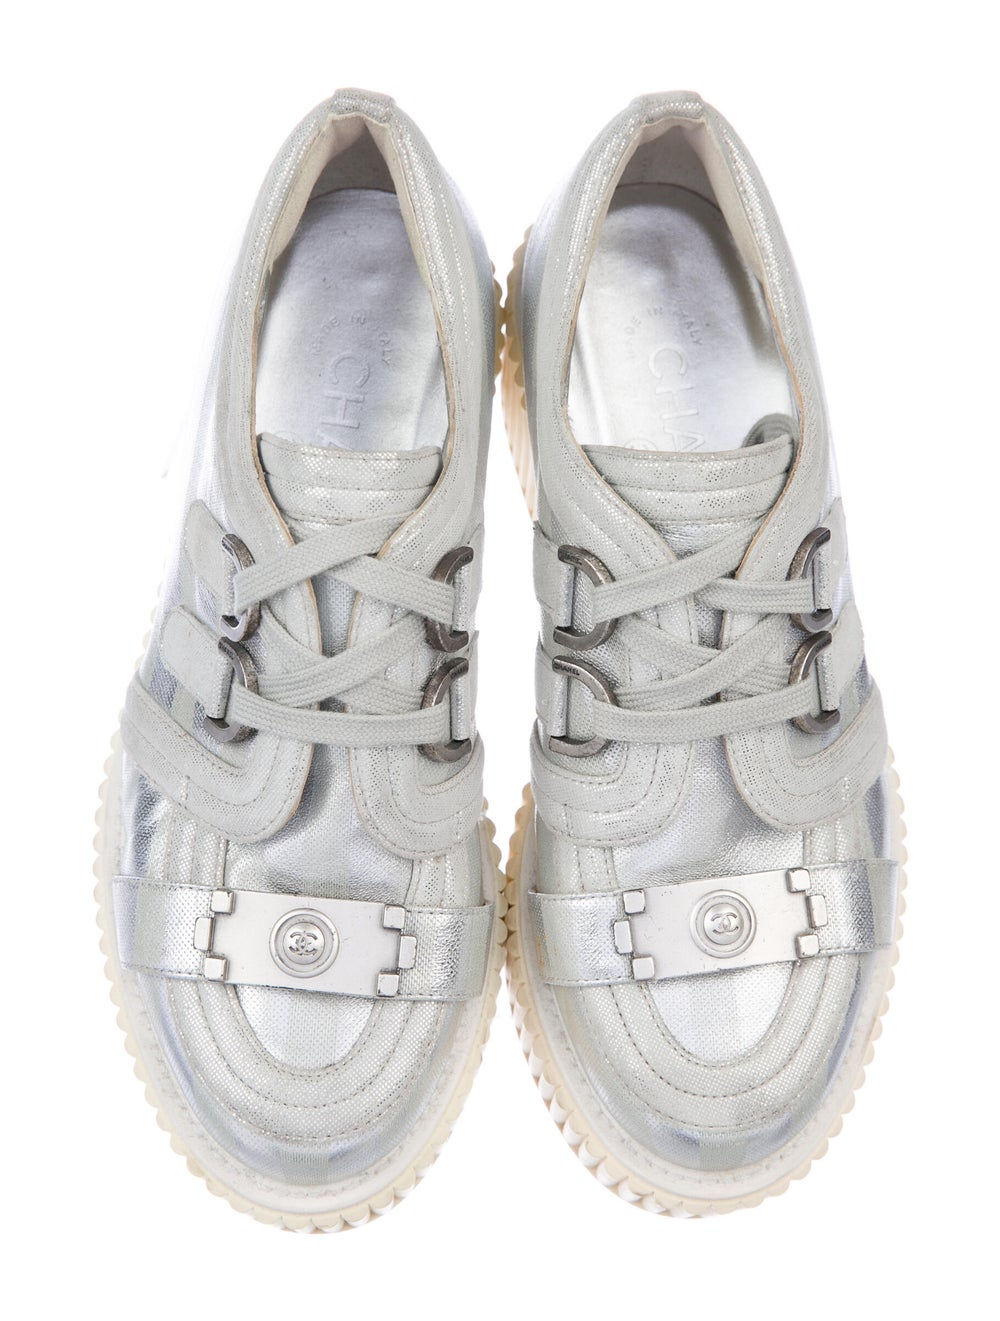 Chanel Lamé Boy Creepers Wedge Sneakers Silver - image 3